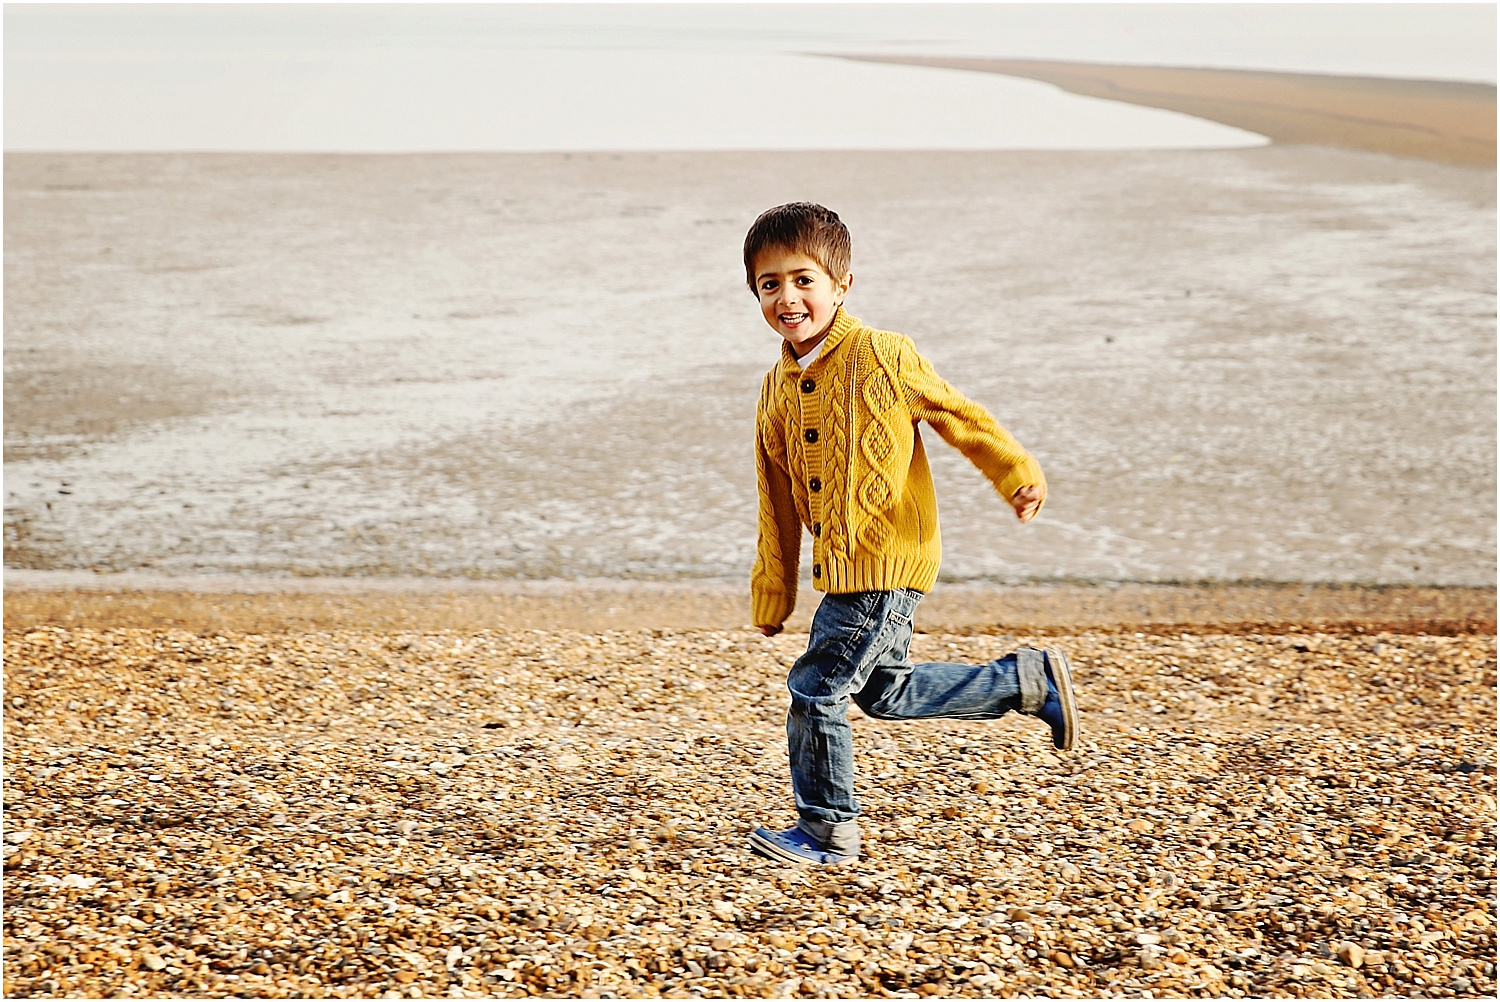 Whitstable beach photography family child boy running on beach